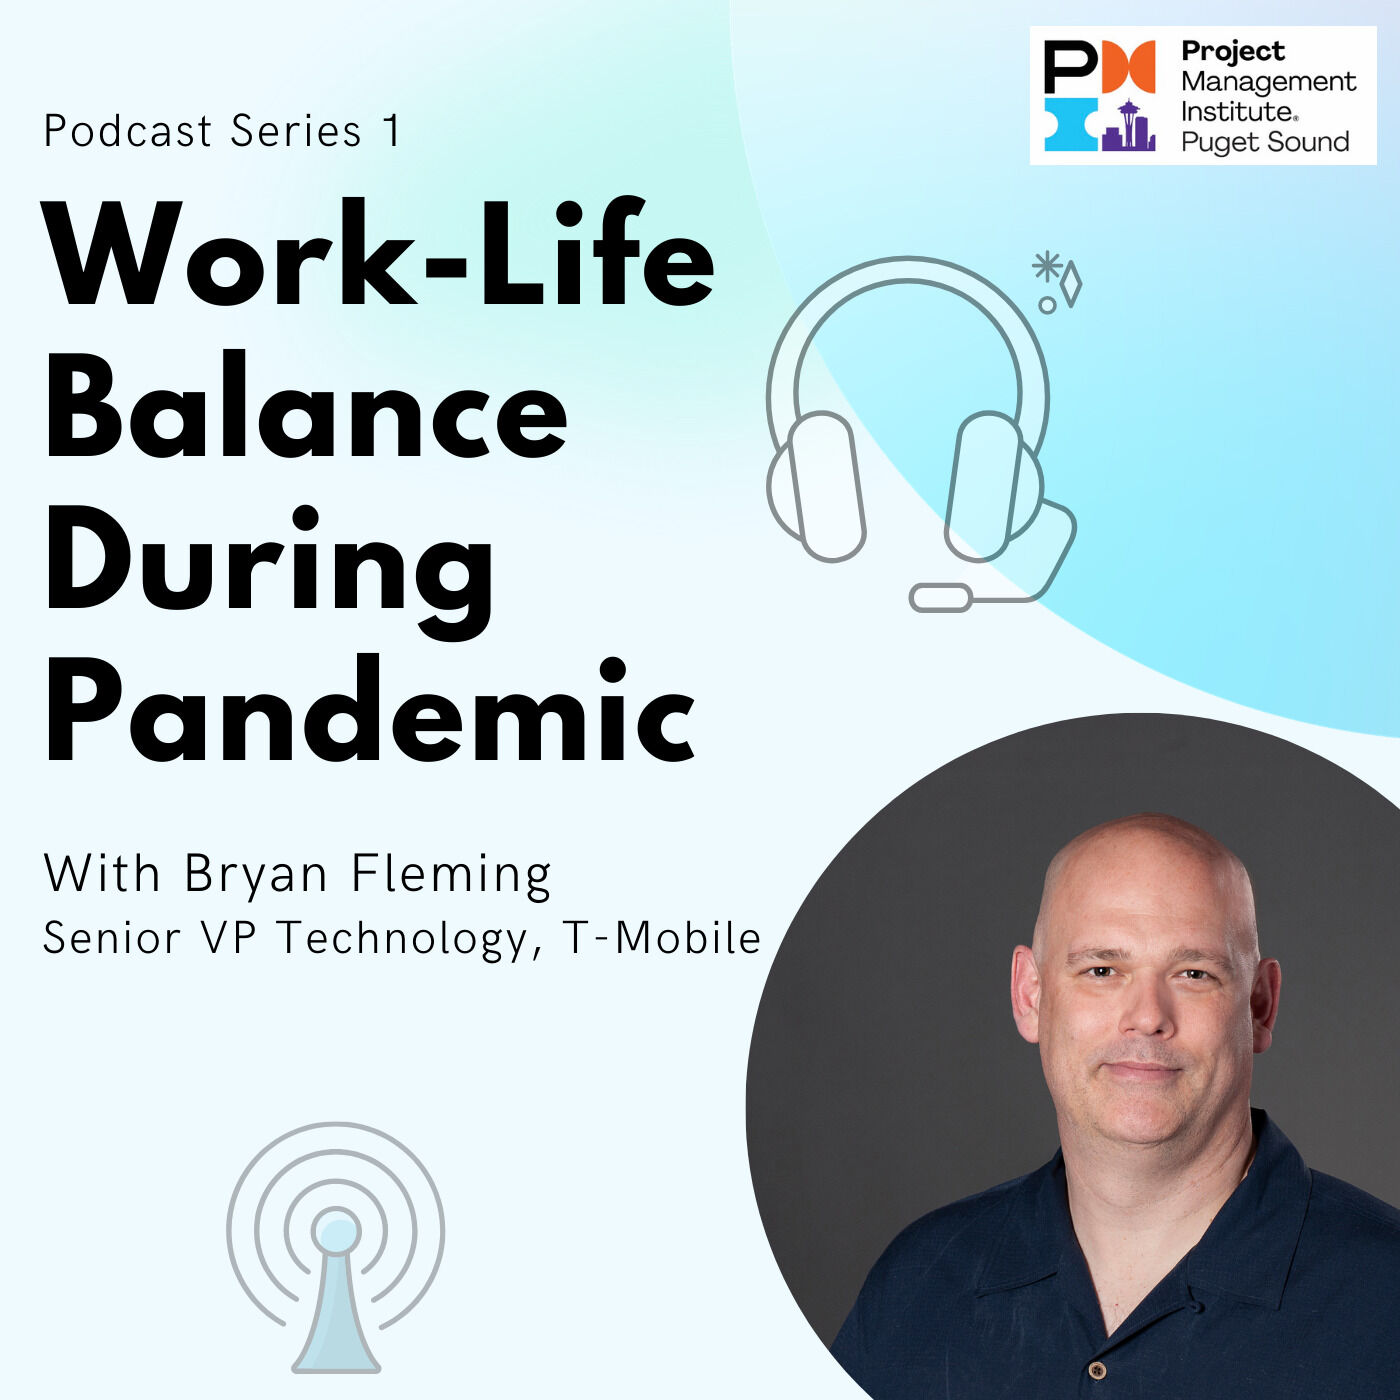 Work-Life Balance During the Pandemic with Bryan Fleming